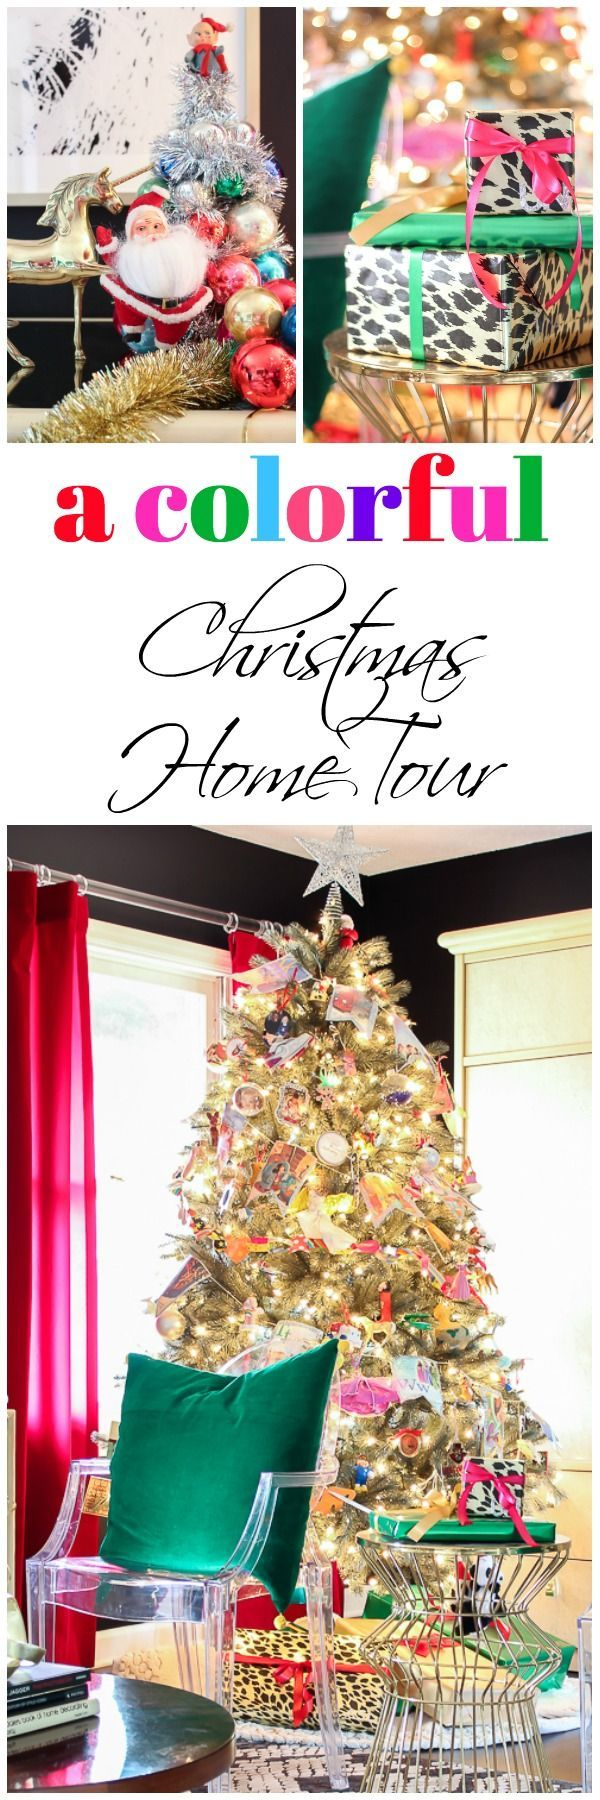 A Colorful Christmas Home Tour 209 best